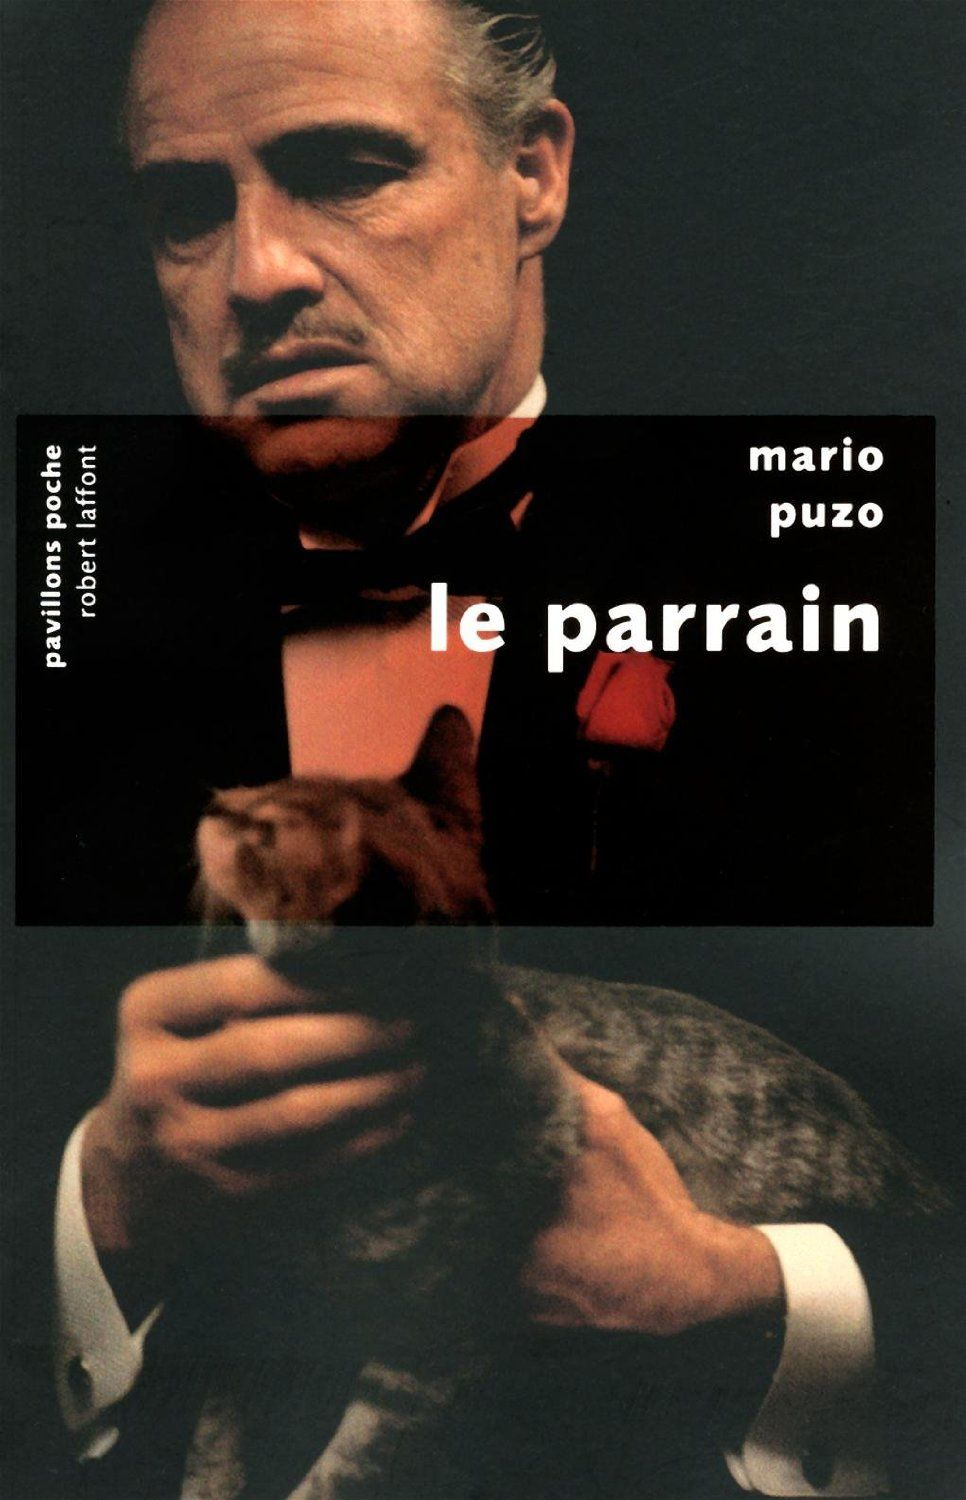 Le parrain - Mario PUZO (The Godfather, 1968), traduction de Jean PERRIER, Robert Laffont, collection Pavillons poche, 2011, 838 pages